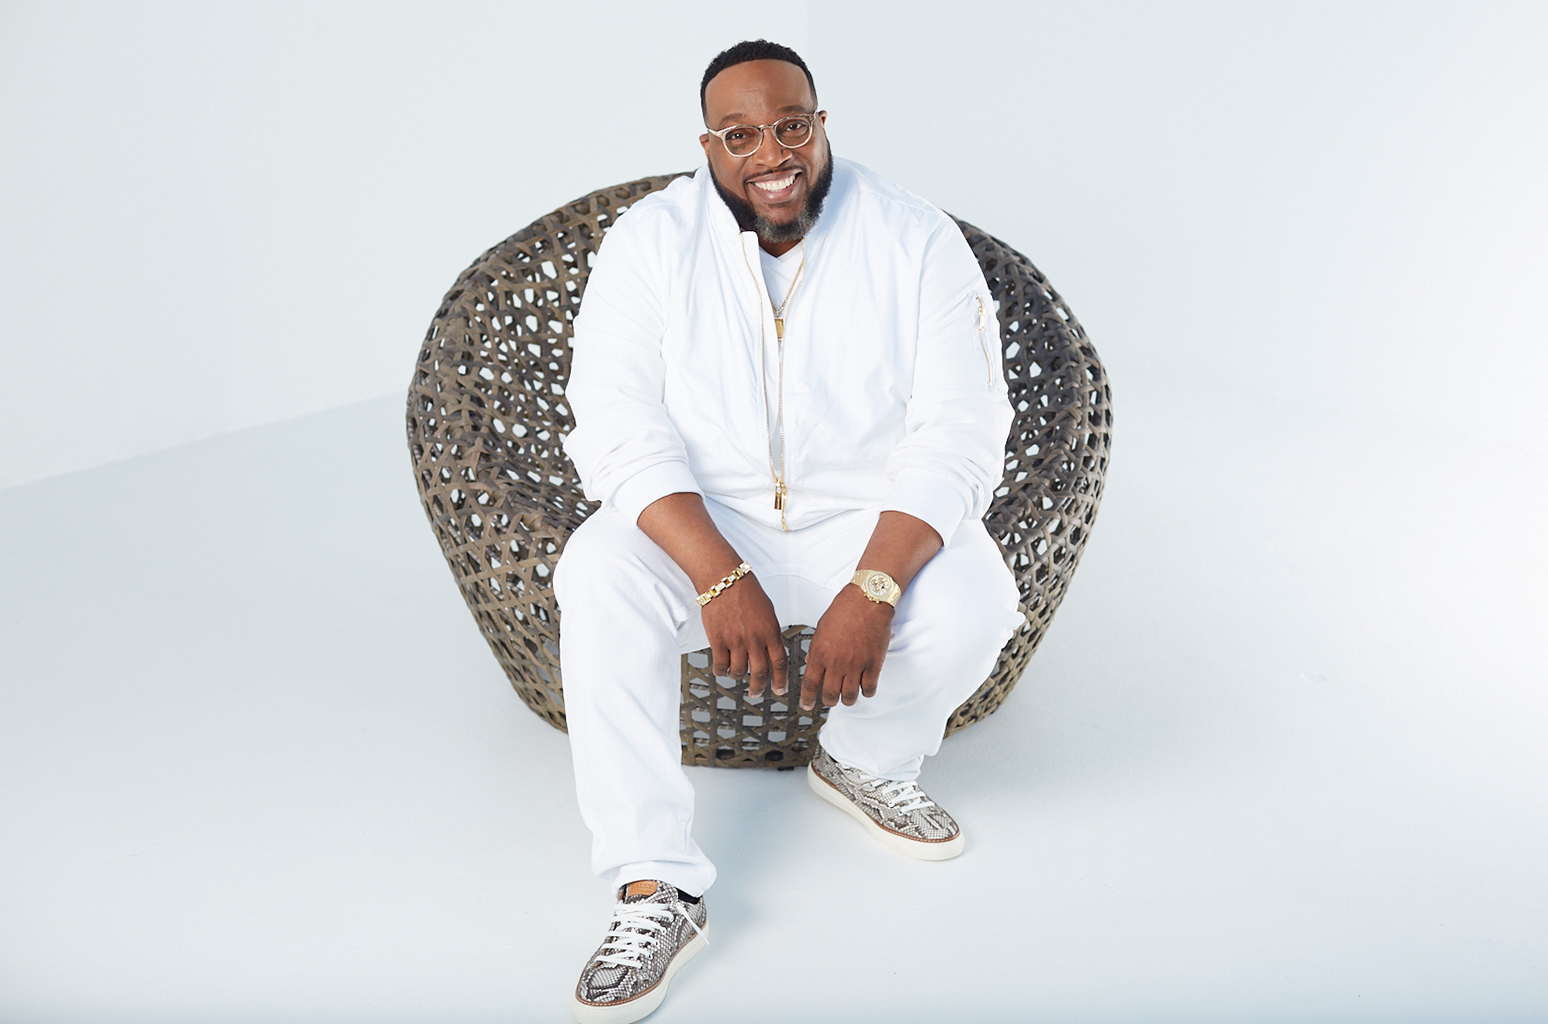 Gospel Singer And Pastor Marvin Sapp Opens Up About Love Lessons Learned As Told In His New Book, 'Suitable'